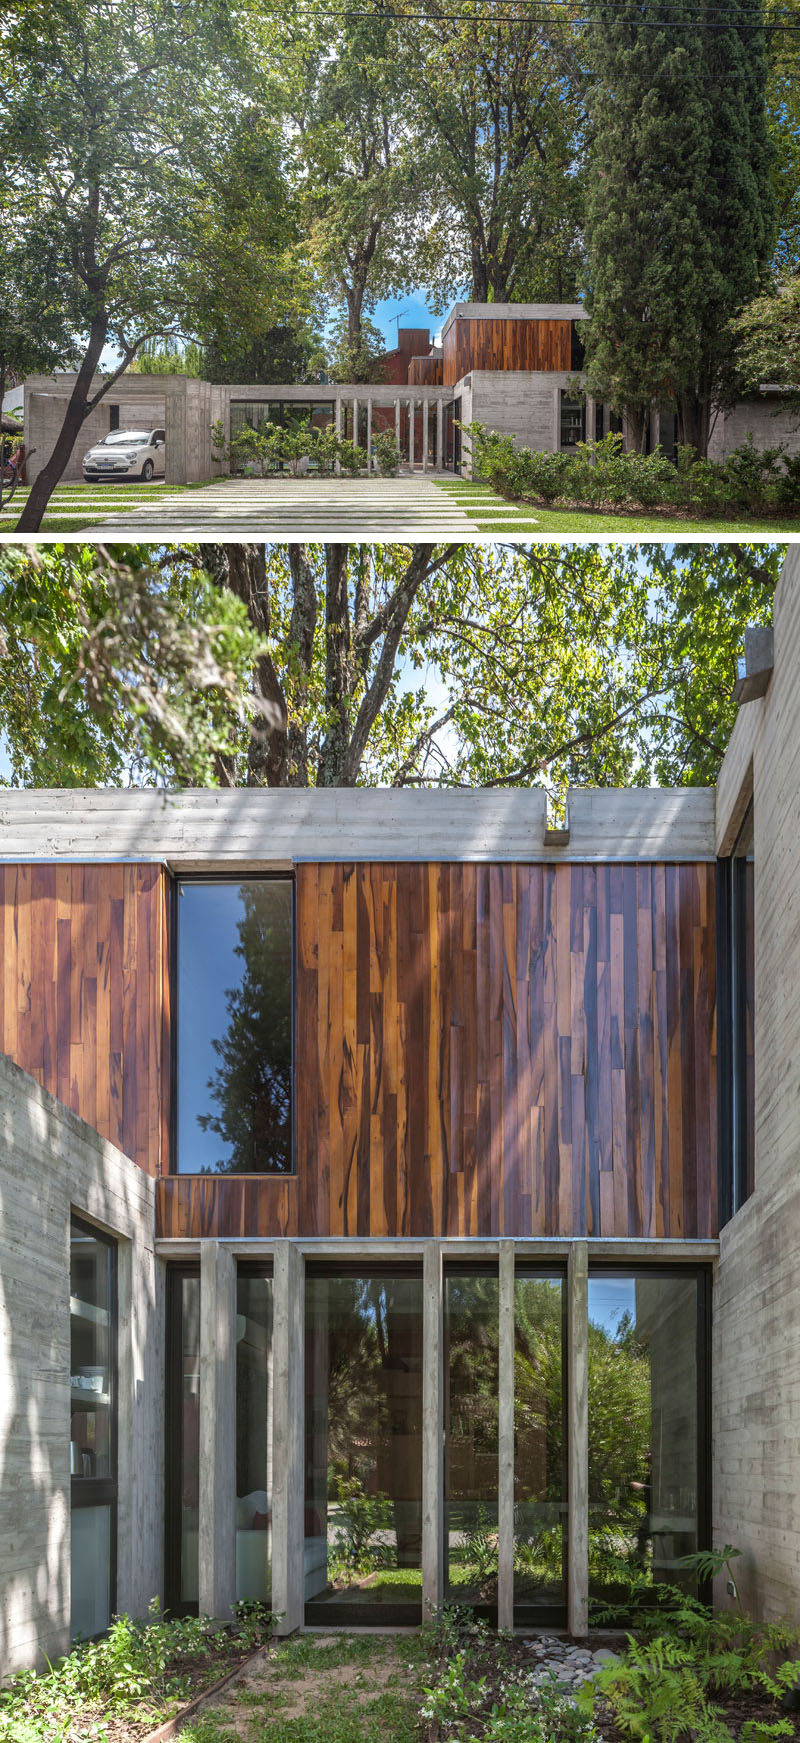 Besonias Almeida arquitectos have designed Casa Aranzazu, a modern concrete and wood house inBuenos Aires, Argentina, that sits on a corner lot surrounded by large trees. #ModernHouse #ConcreteHouse #Architecture